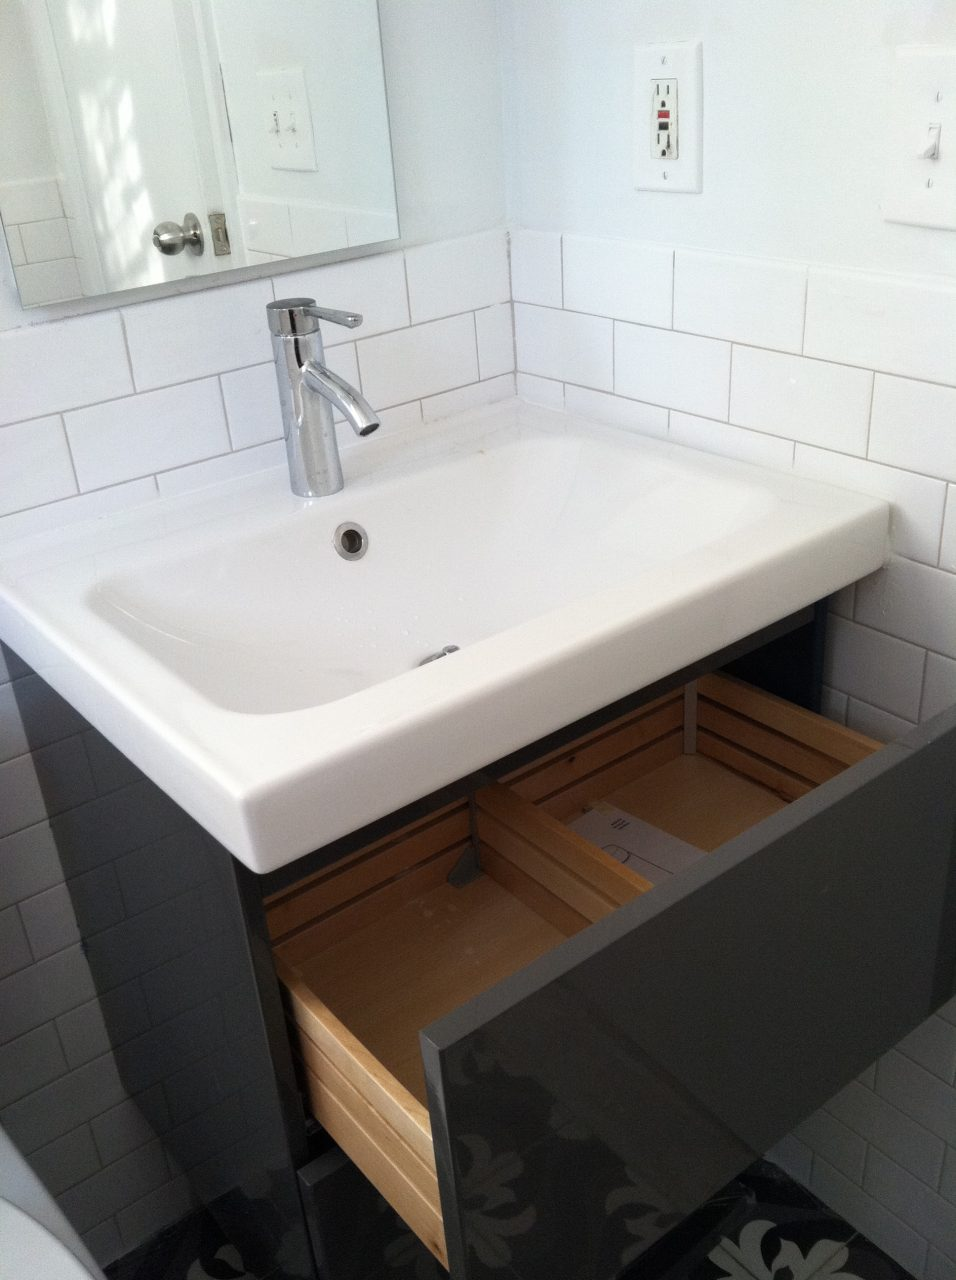 Small Bathroom Vanities Ikea Of Great Design With Paint And Lenova